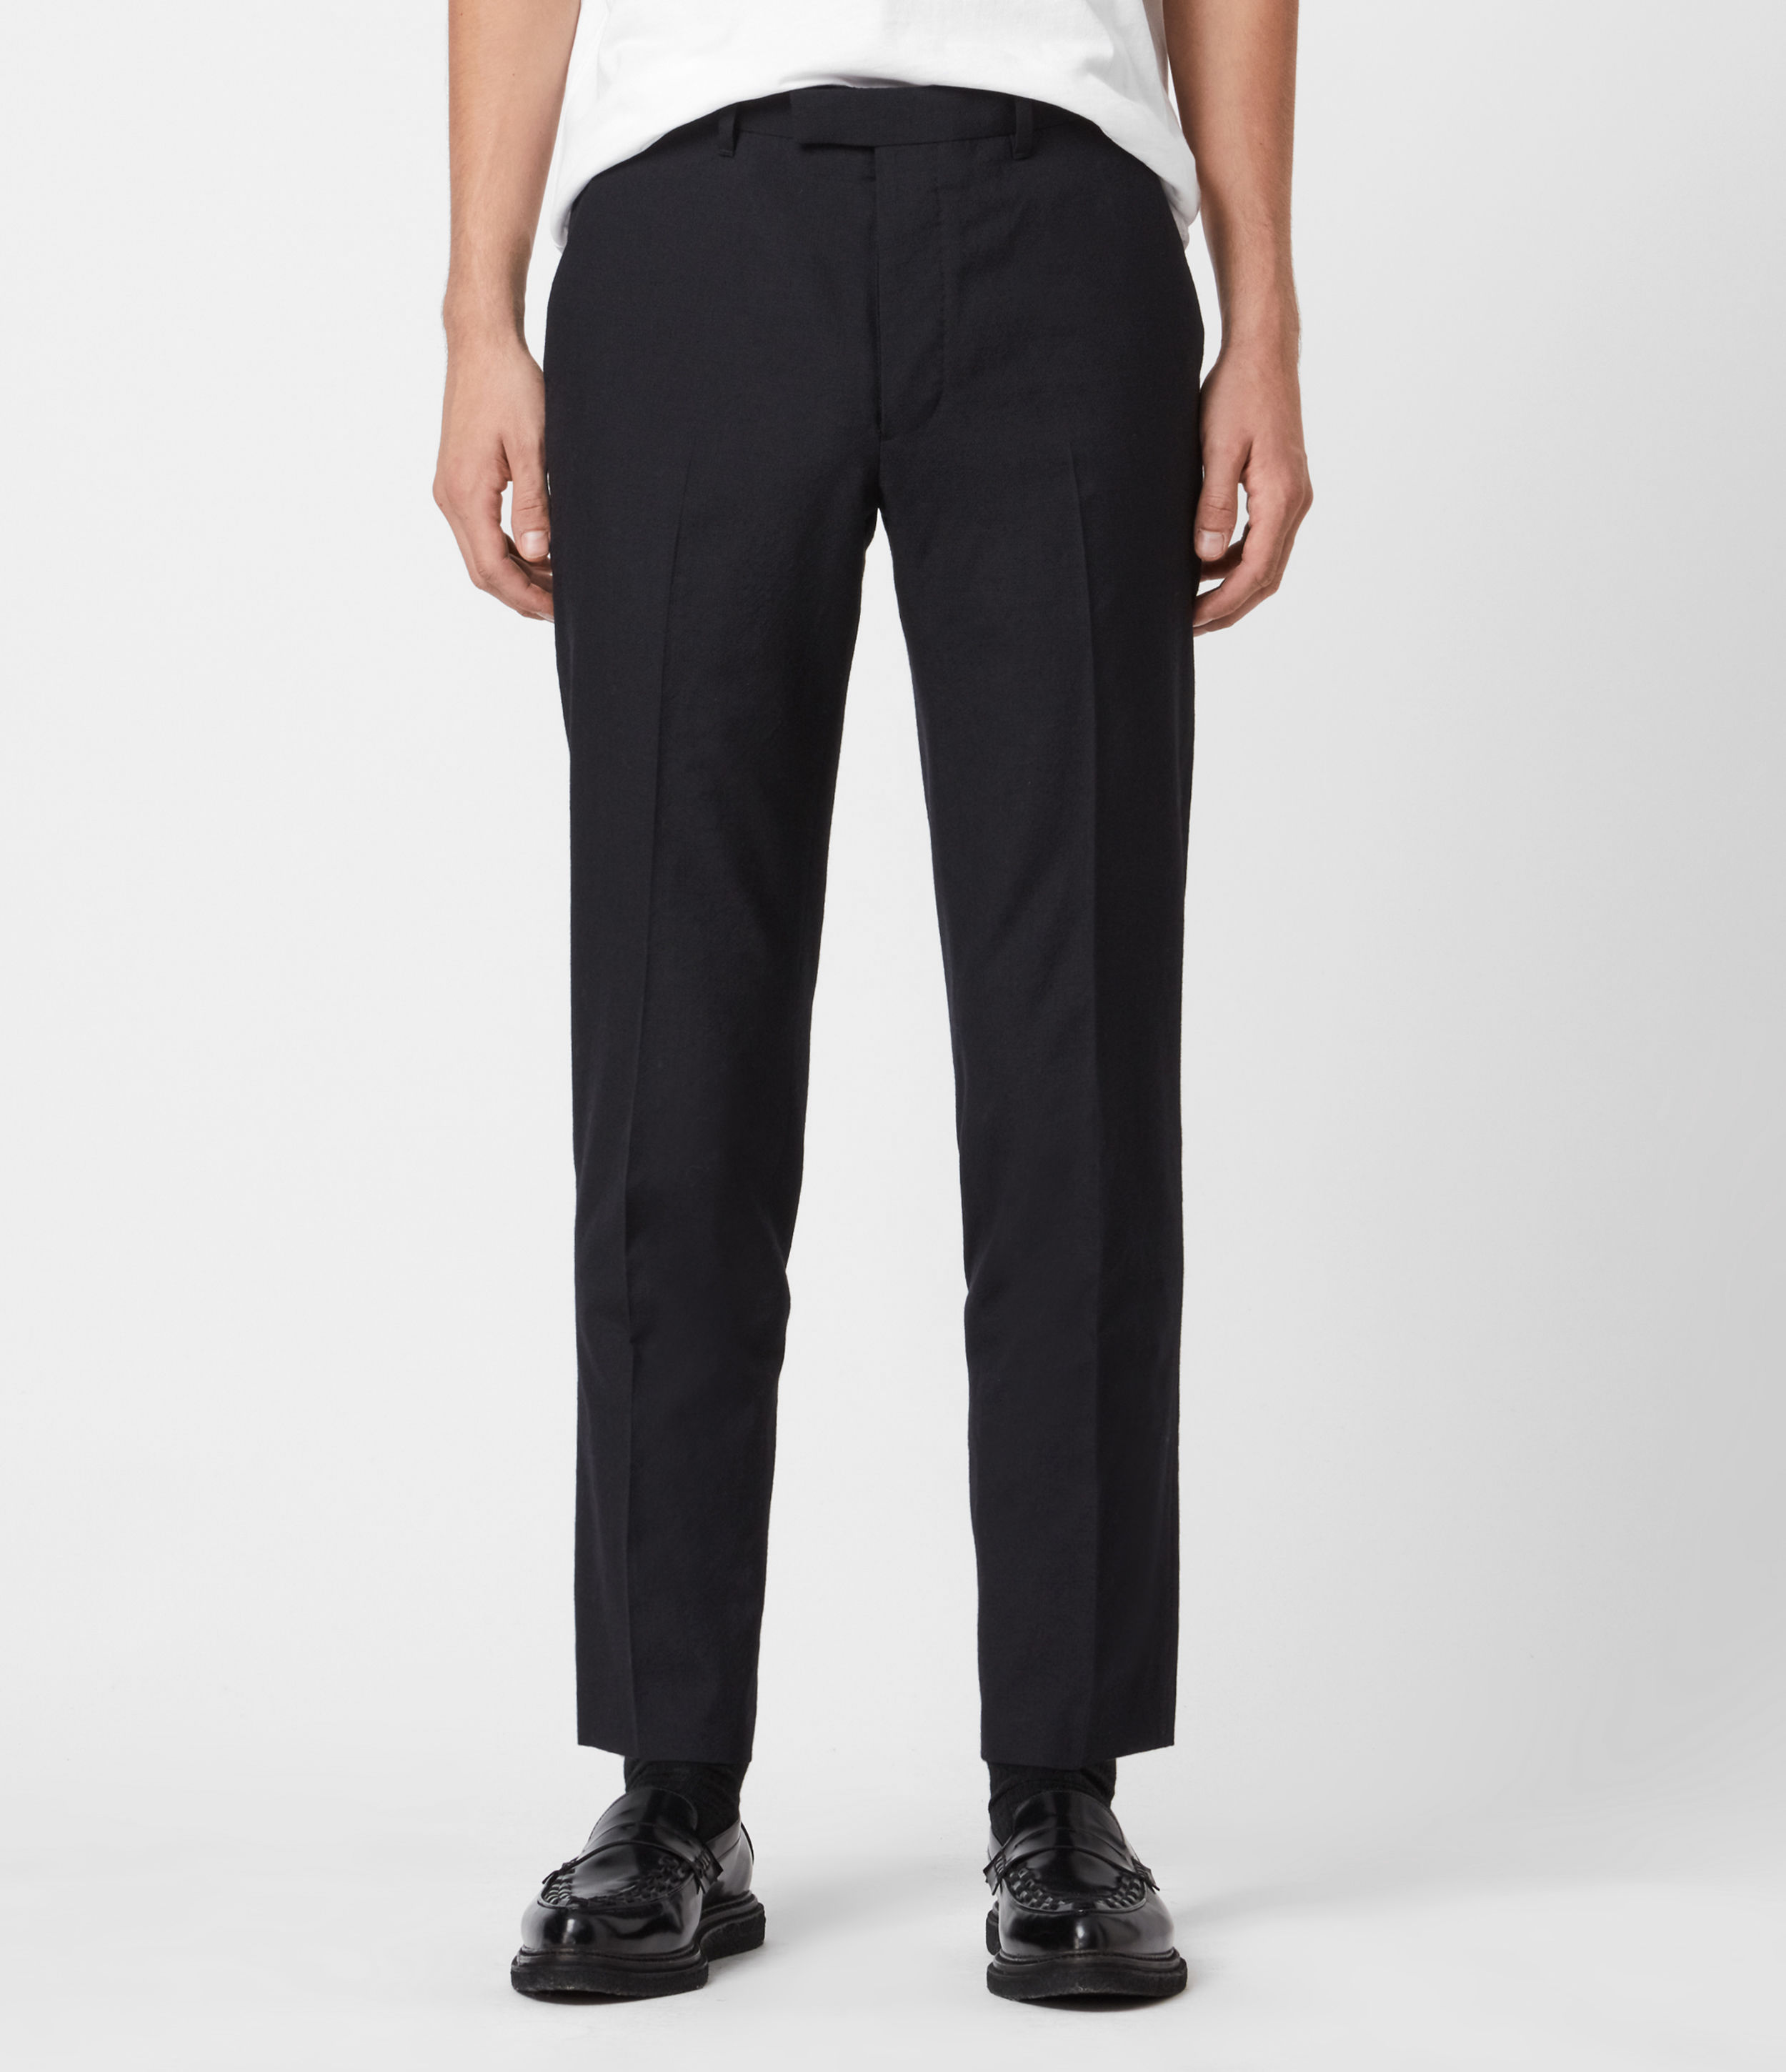 AllSaints Mens Kennel Cropped Slim Trousers, Midnight, Size: 28